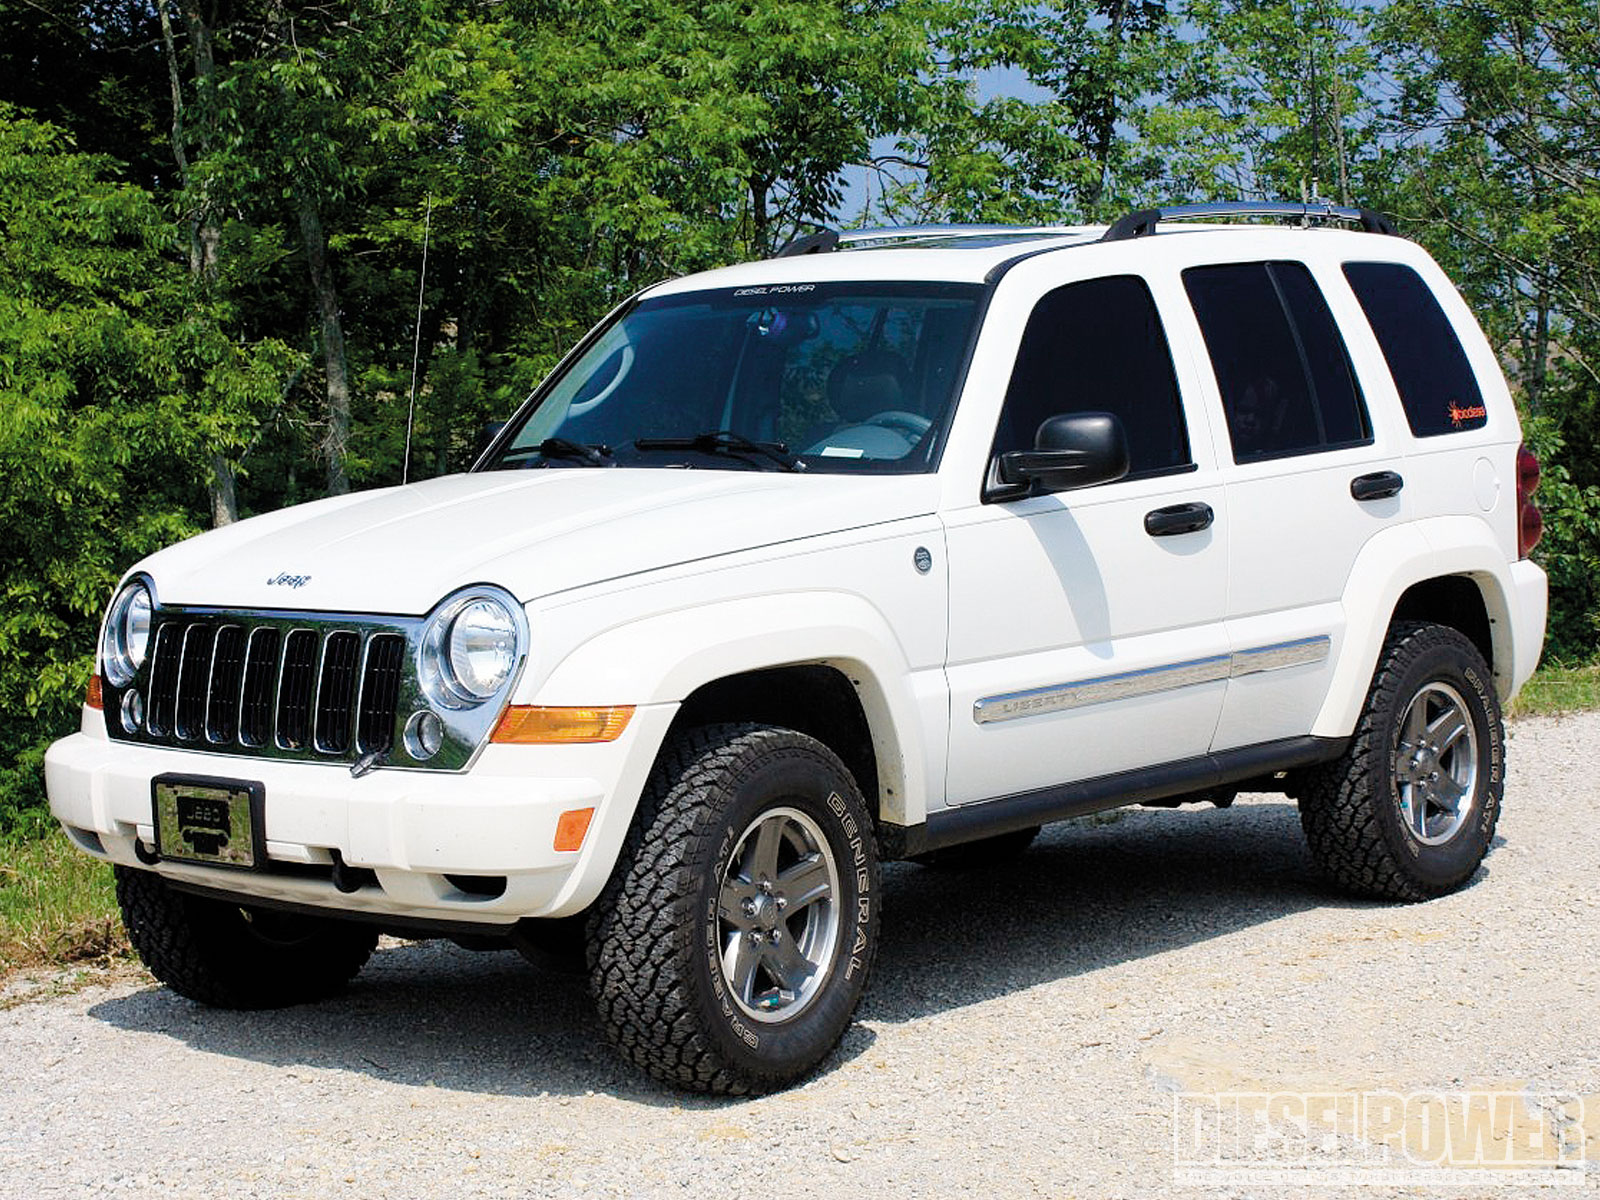 2005 jeep liberty white 200 interior and exterior images. Black Bedroom Furniture Sets. Home Design Ideas